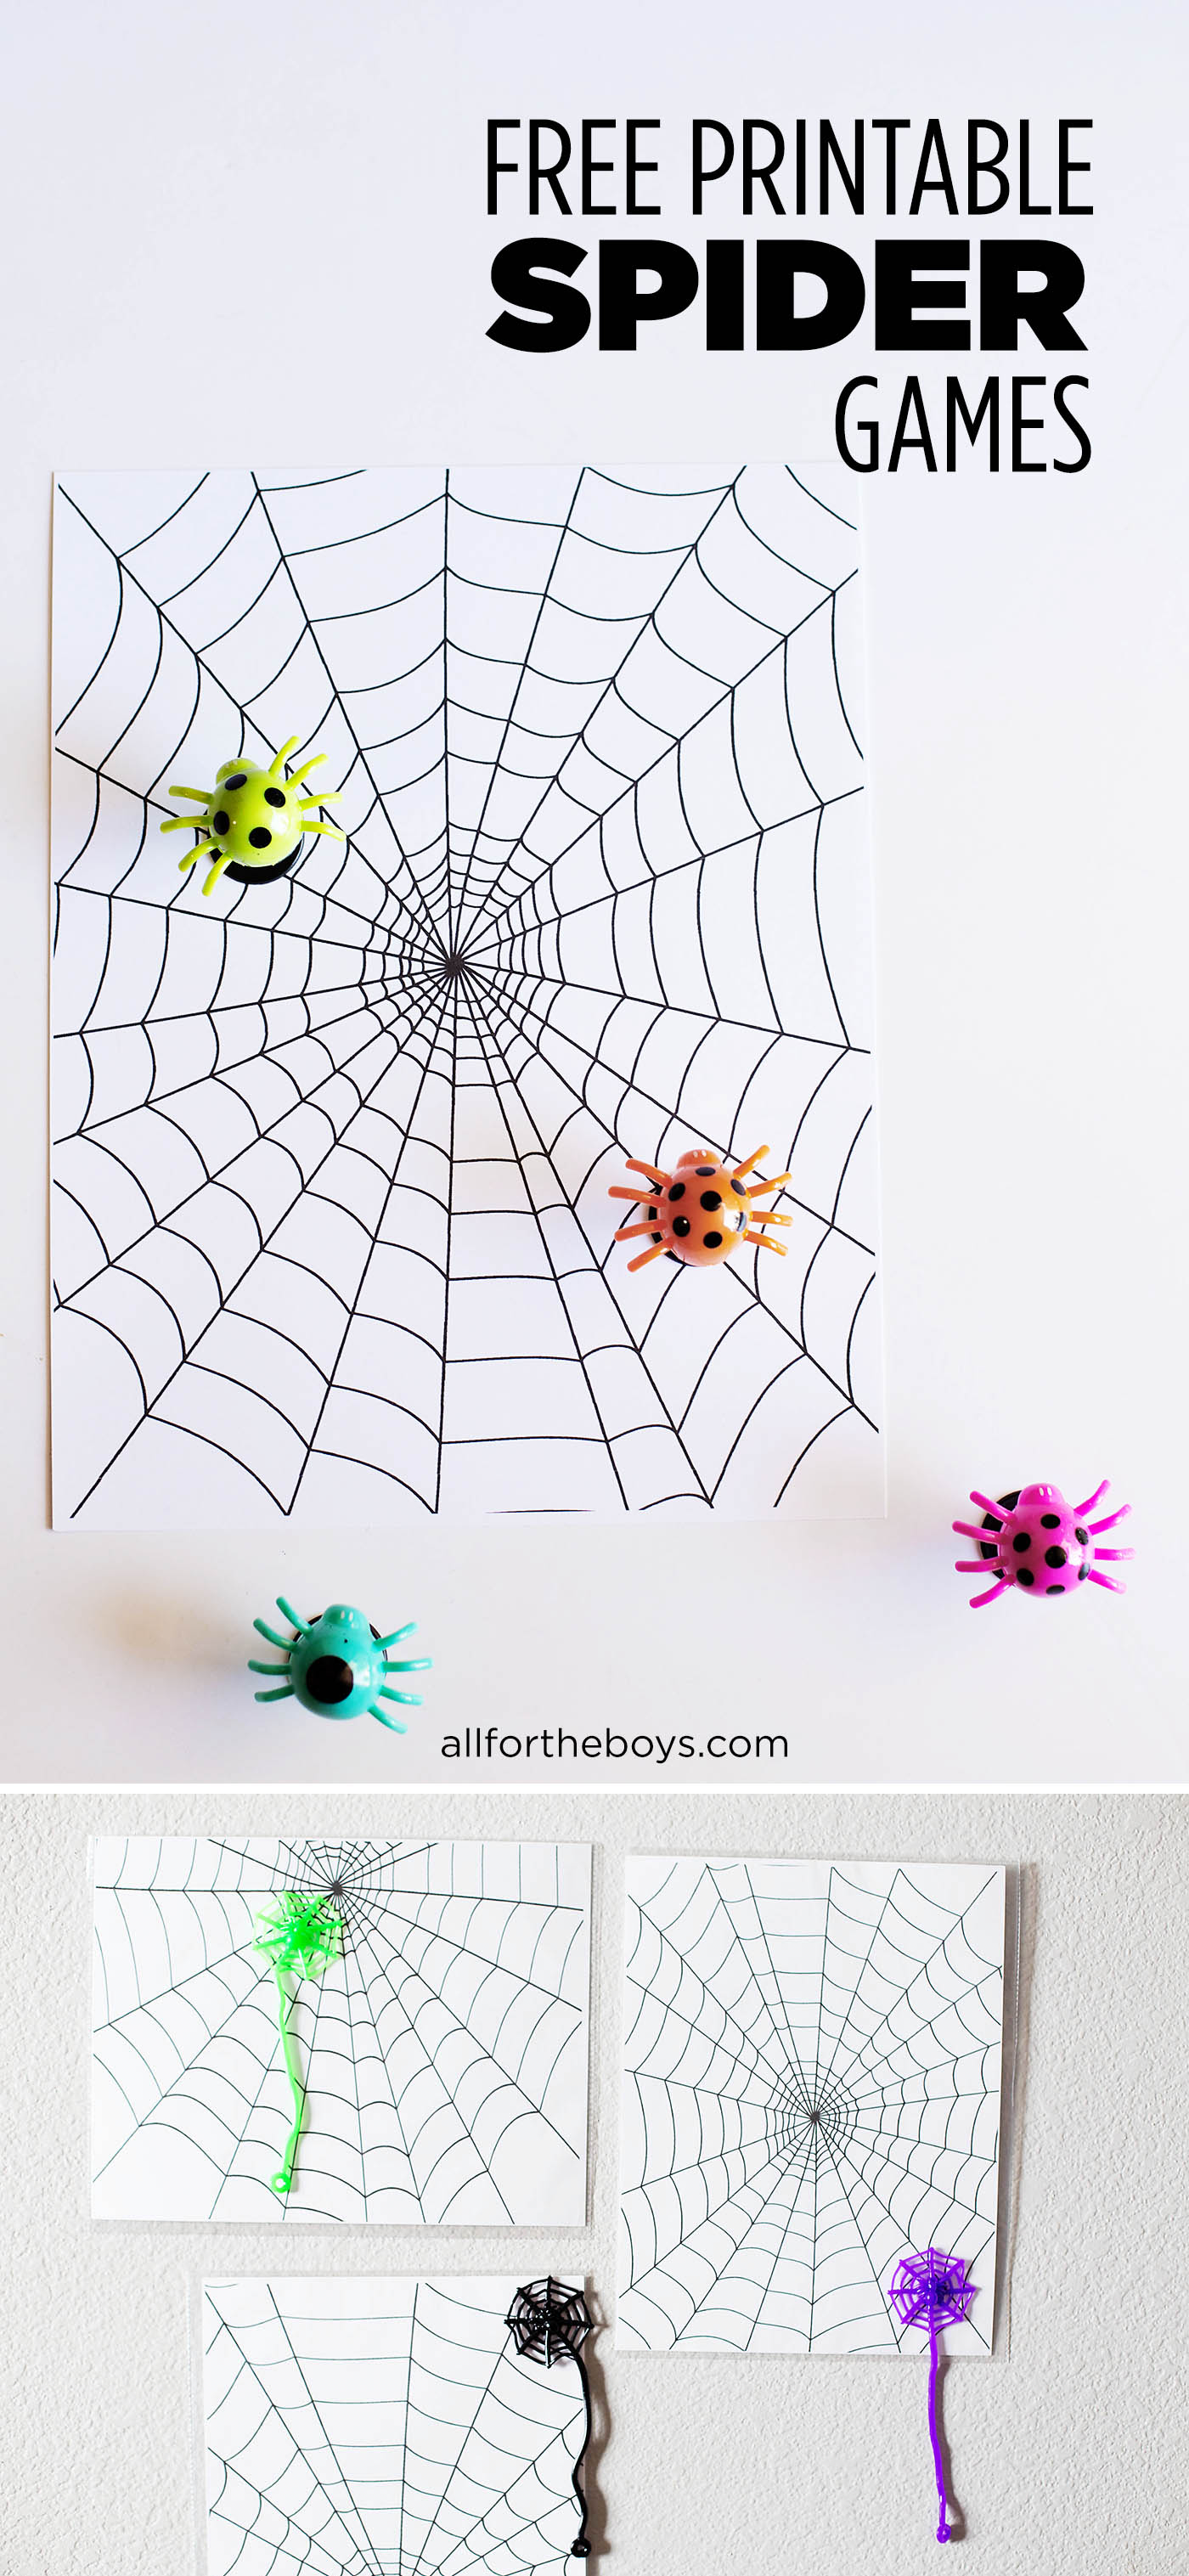 Uncategorized Fun Printable Games printable spider games all for the boys free fun a halloween party or just to play fun